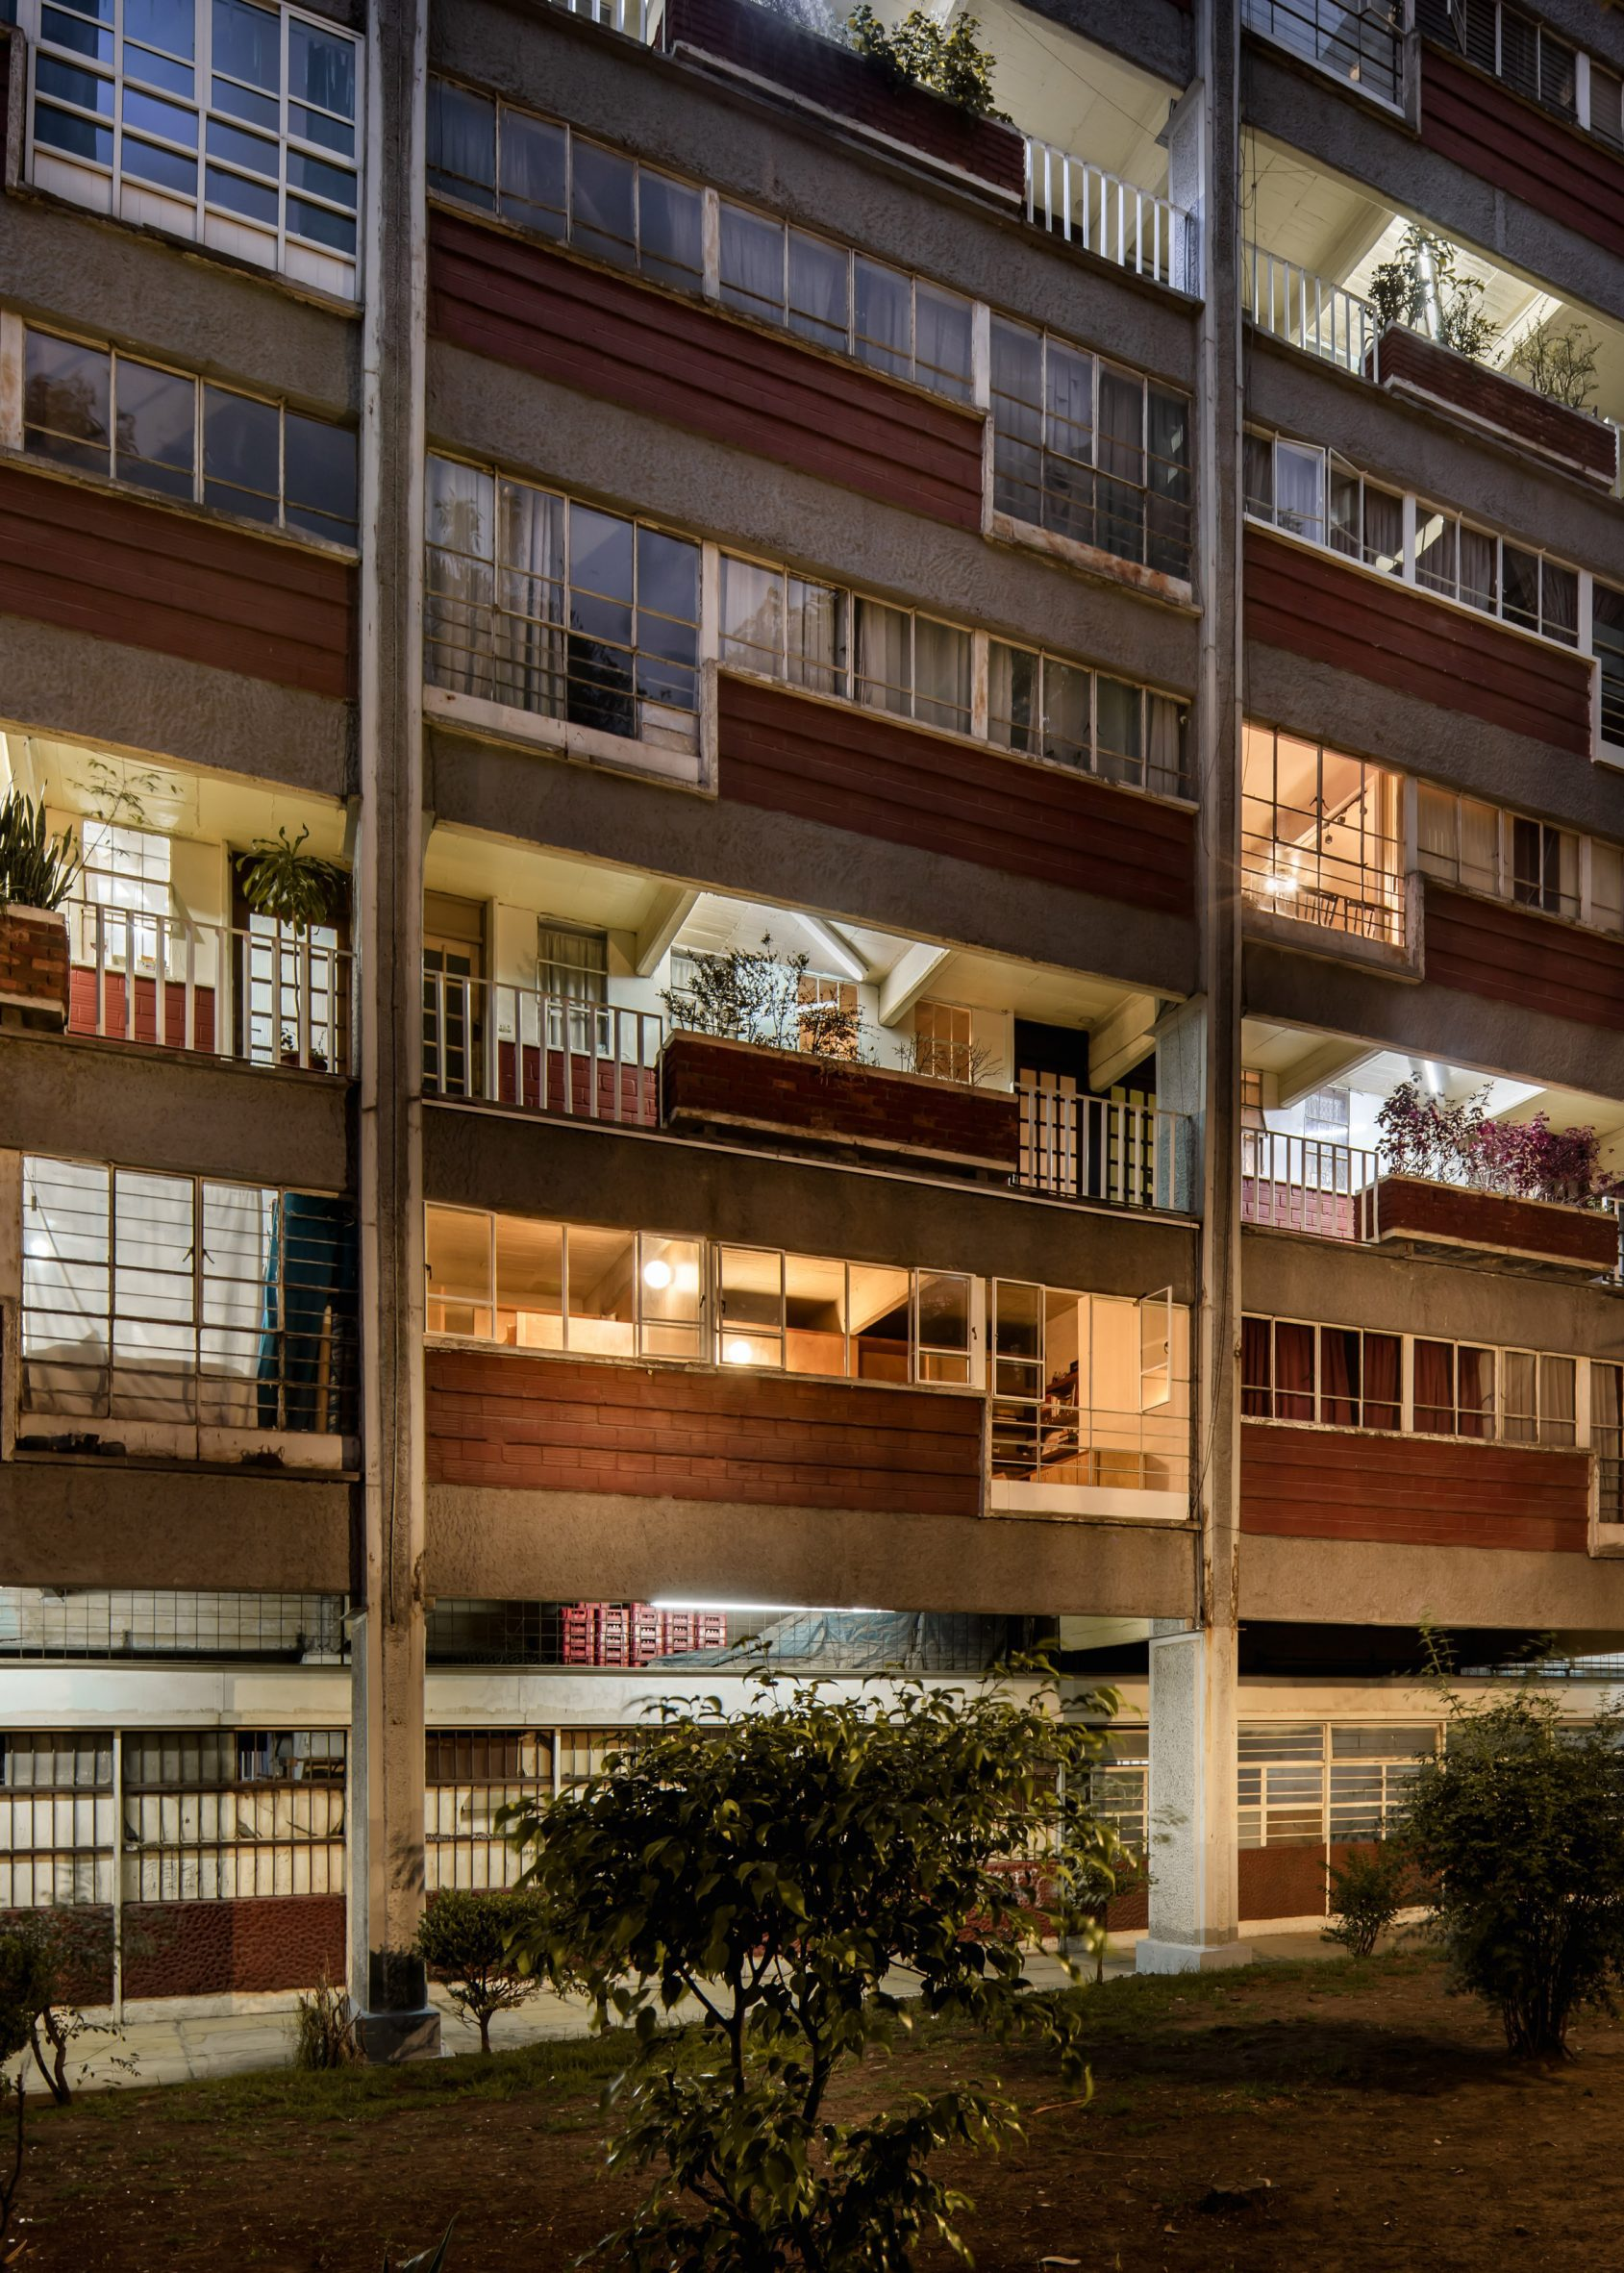 Apartment building in Mexico City